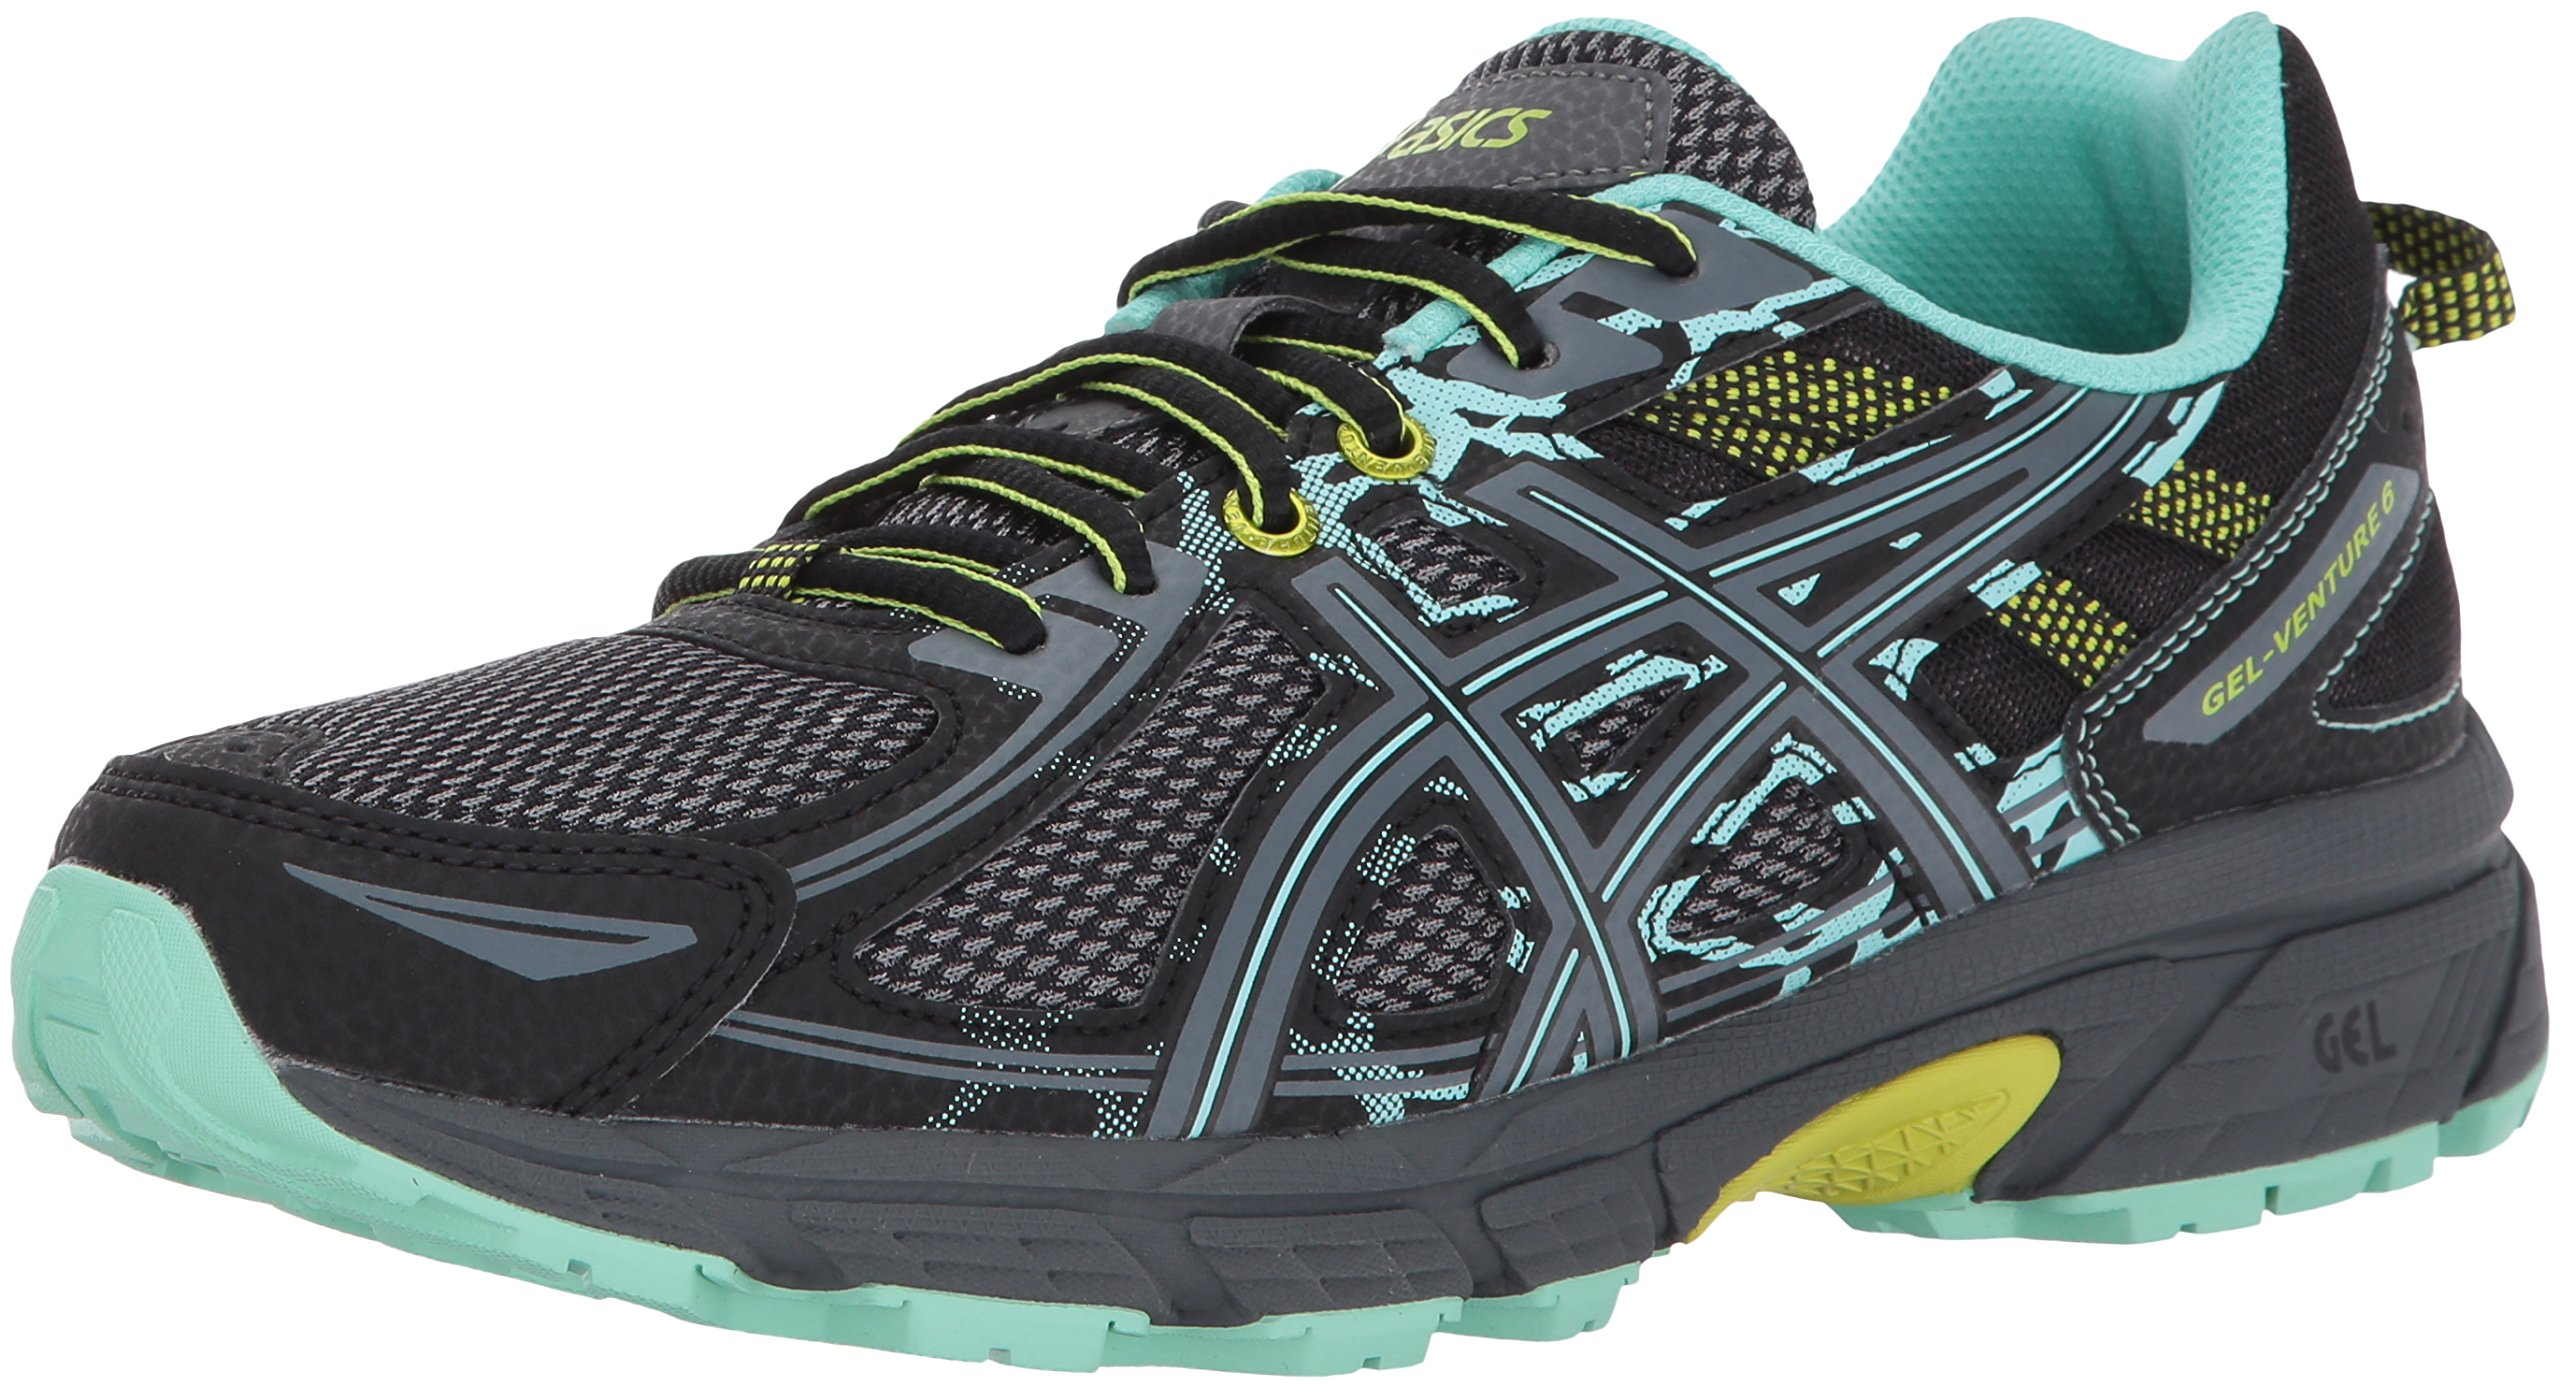 ASICS Women's Gel-Venture 6 Running-Shoes,Black/Carbon/Neon Lime,10 Medium US by ASICS